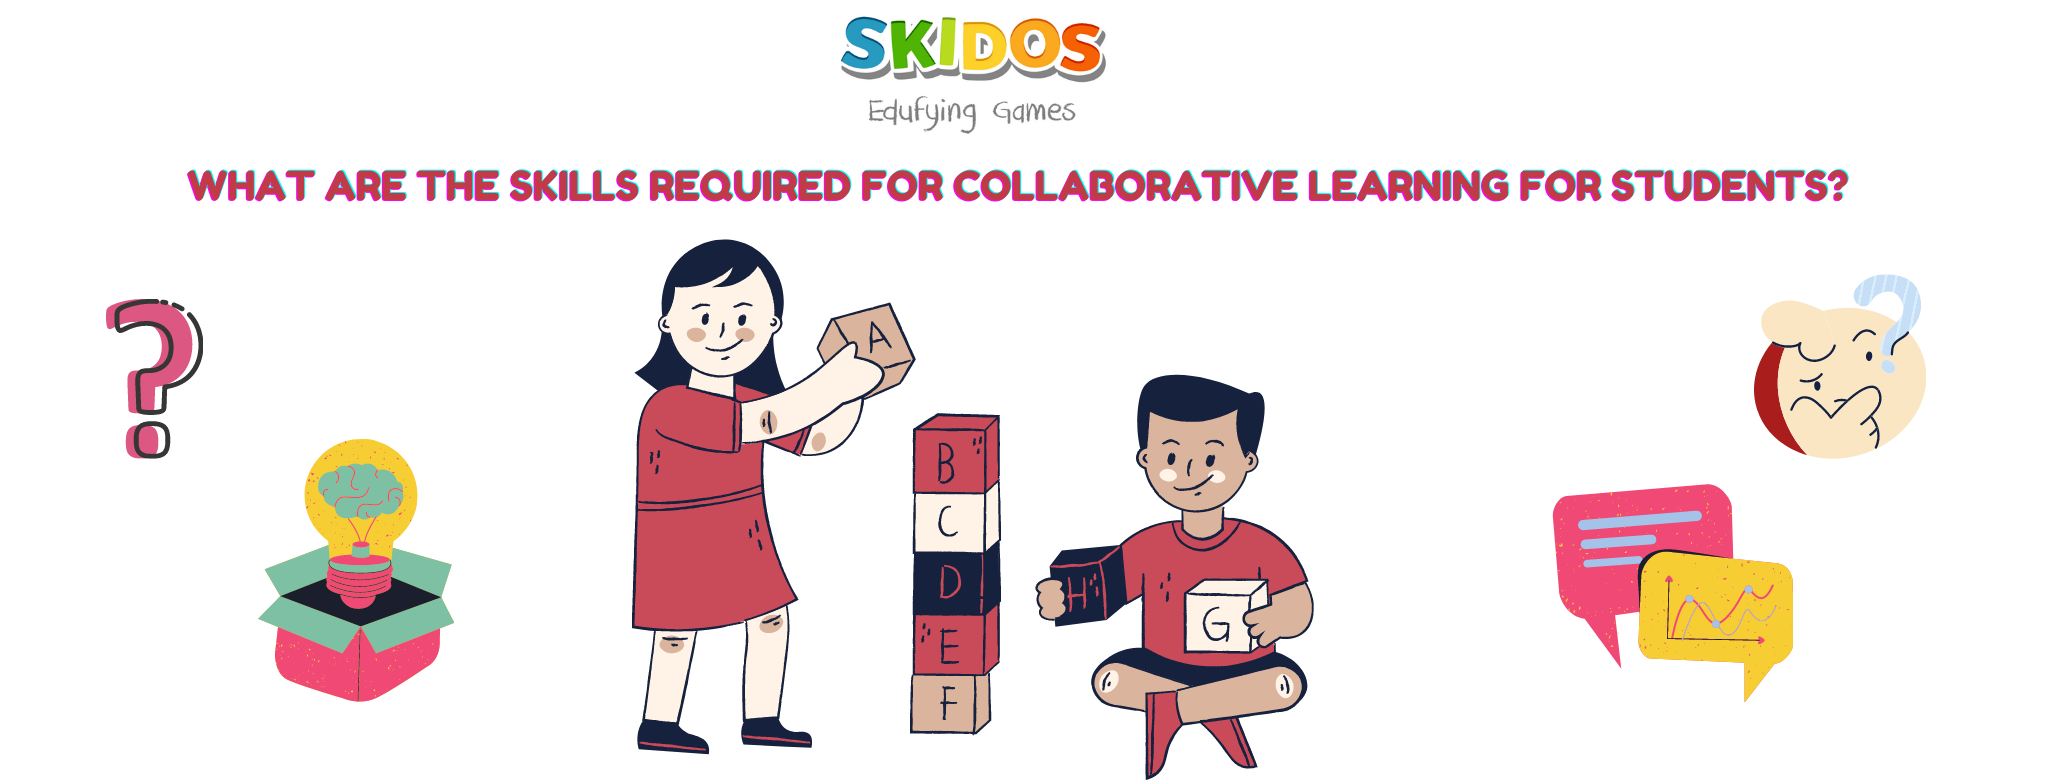 What are the skills required for collaborative learning for students